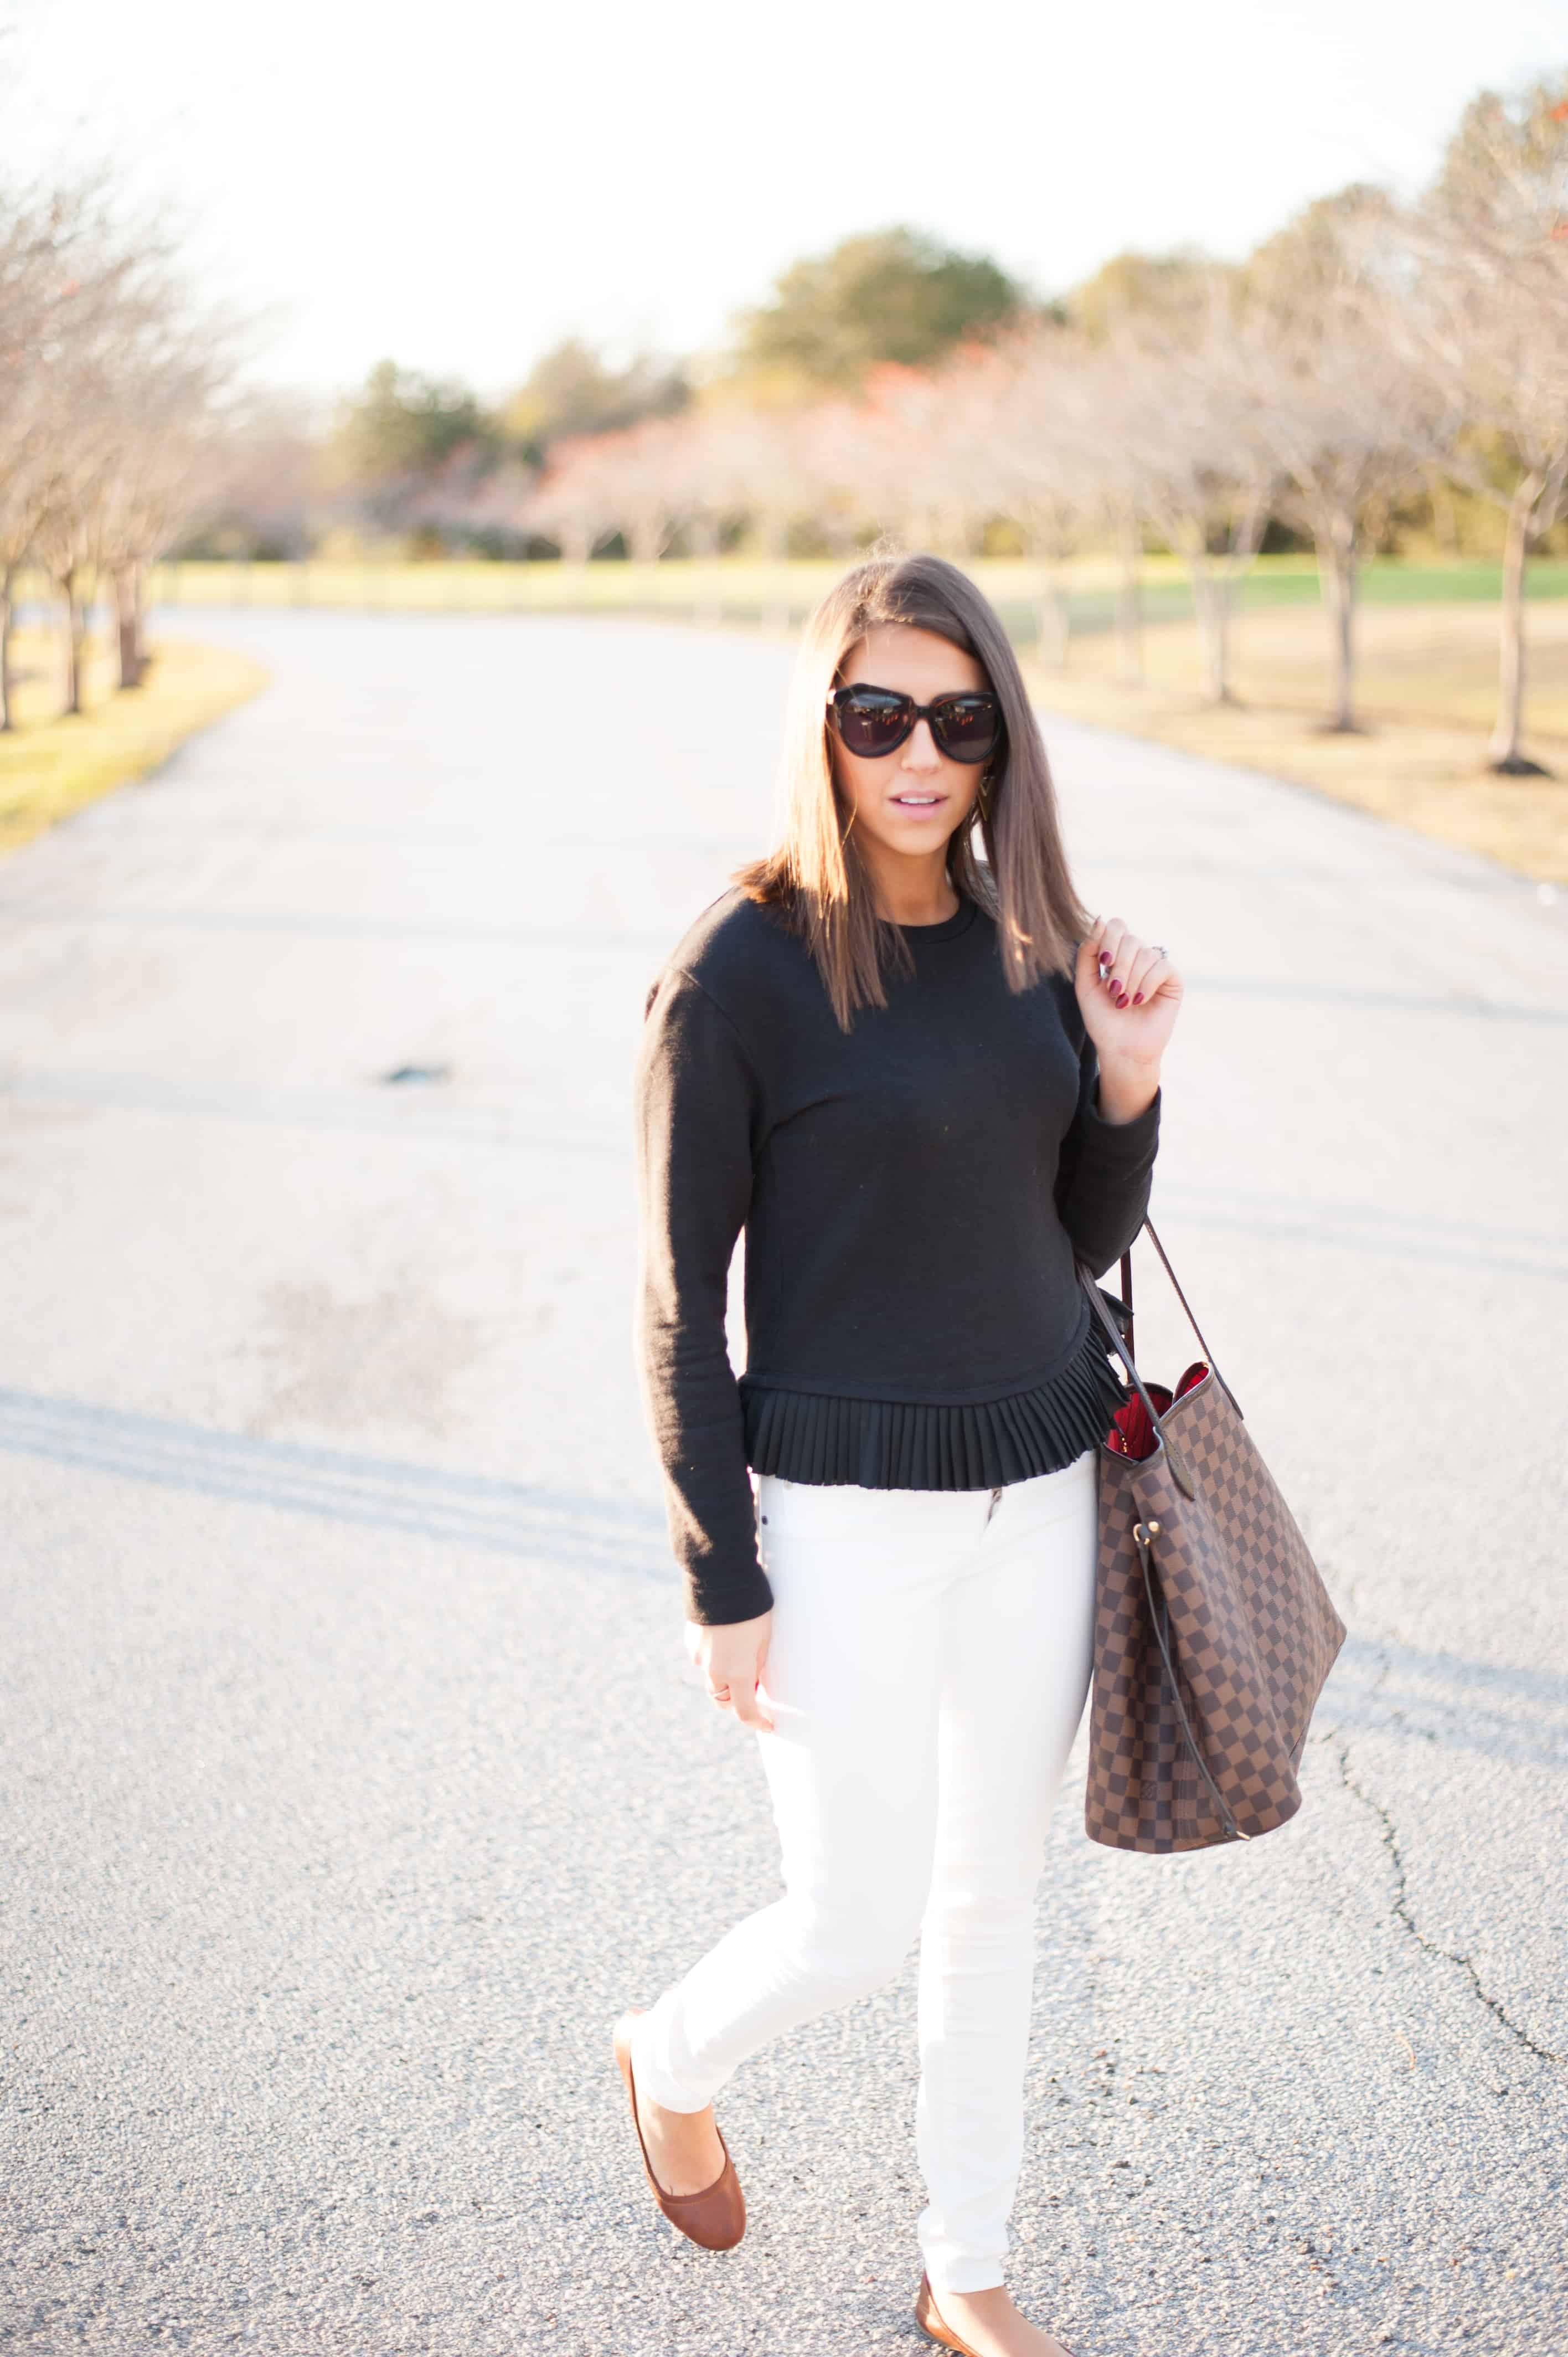 dress_up_buttercup_dede_raad_fashion_blogger_houston (7 of 8)